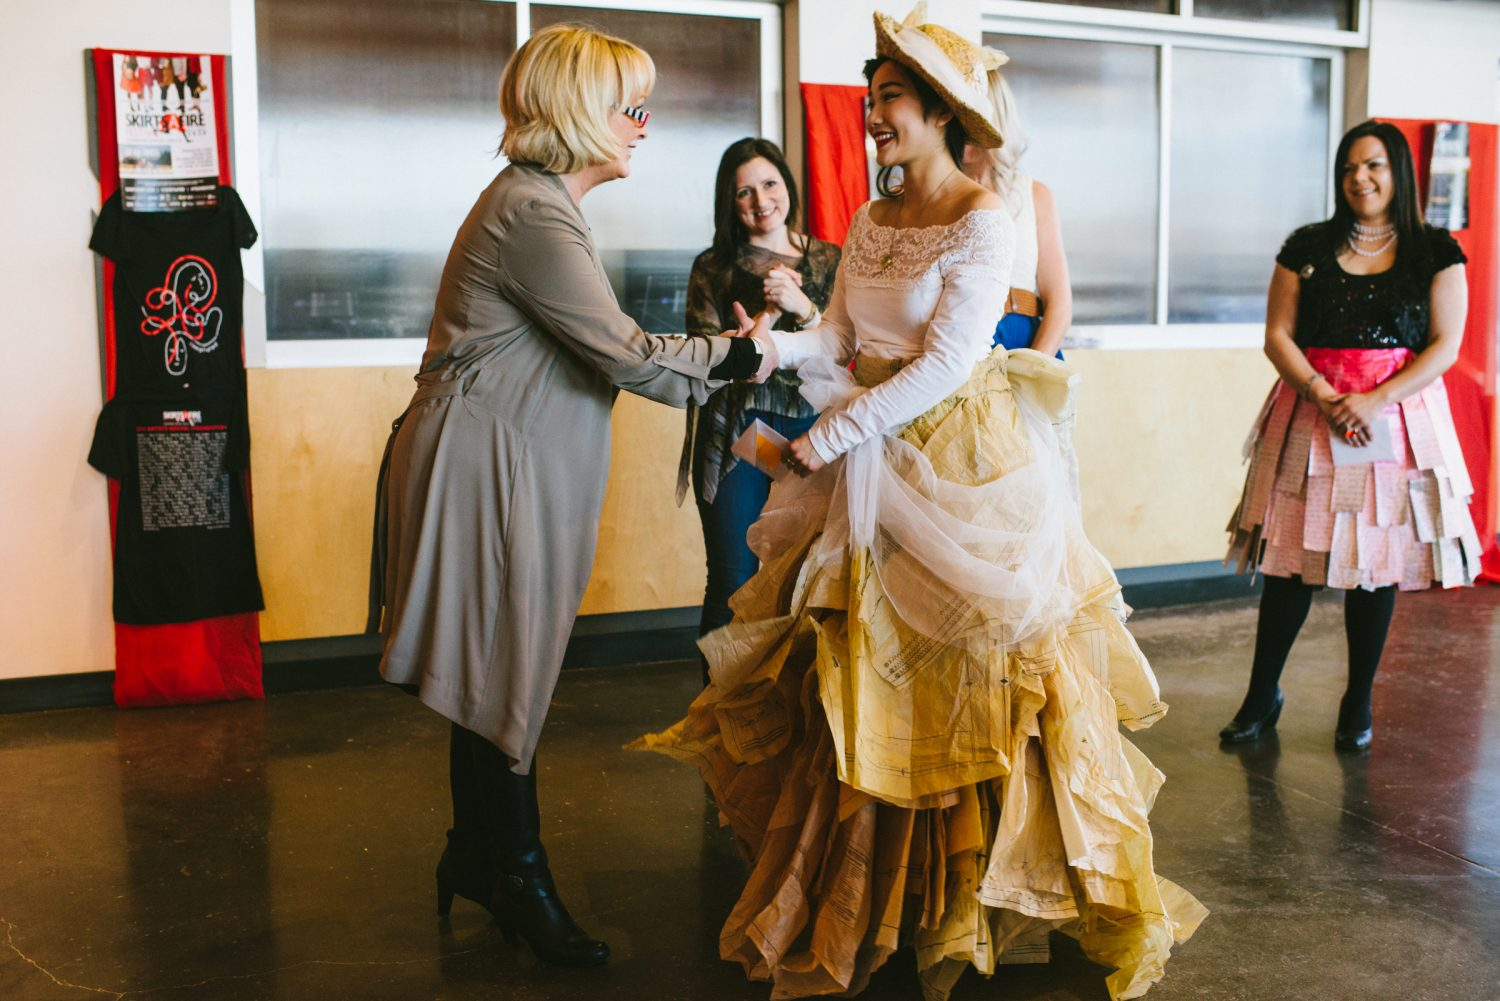 SkirtsAfire's 2020 Honorary Skirt Lesley MacDonald congratulating the winning design by Joanne Ngo. Photo by BB Collective.